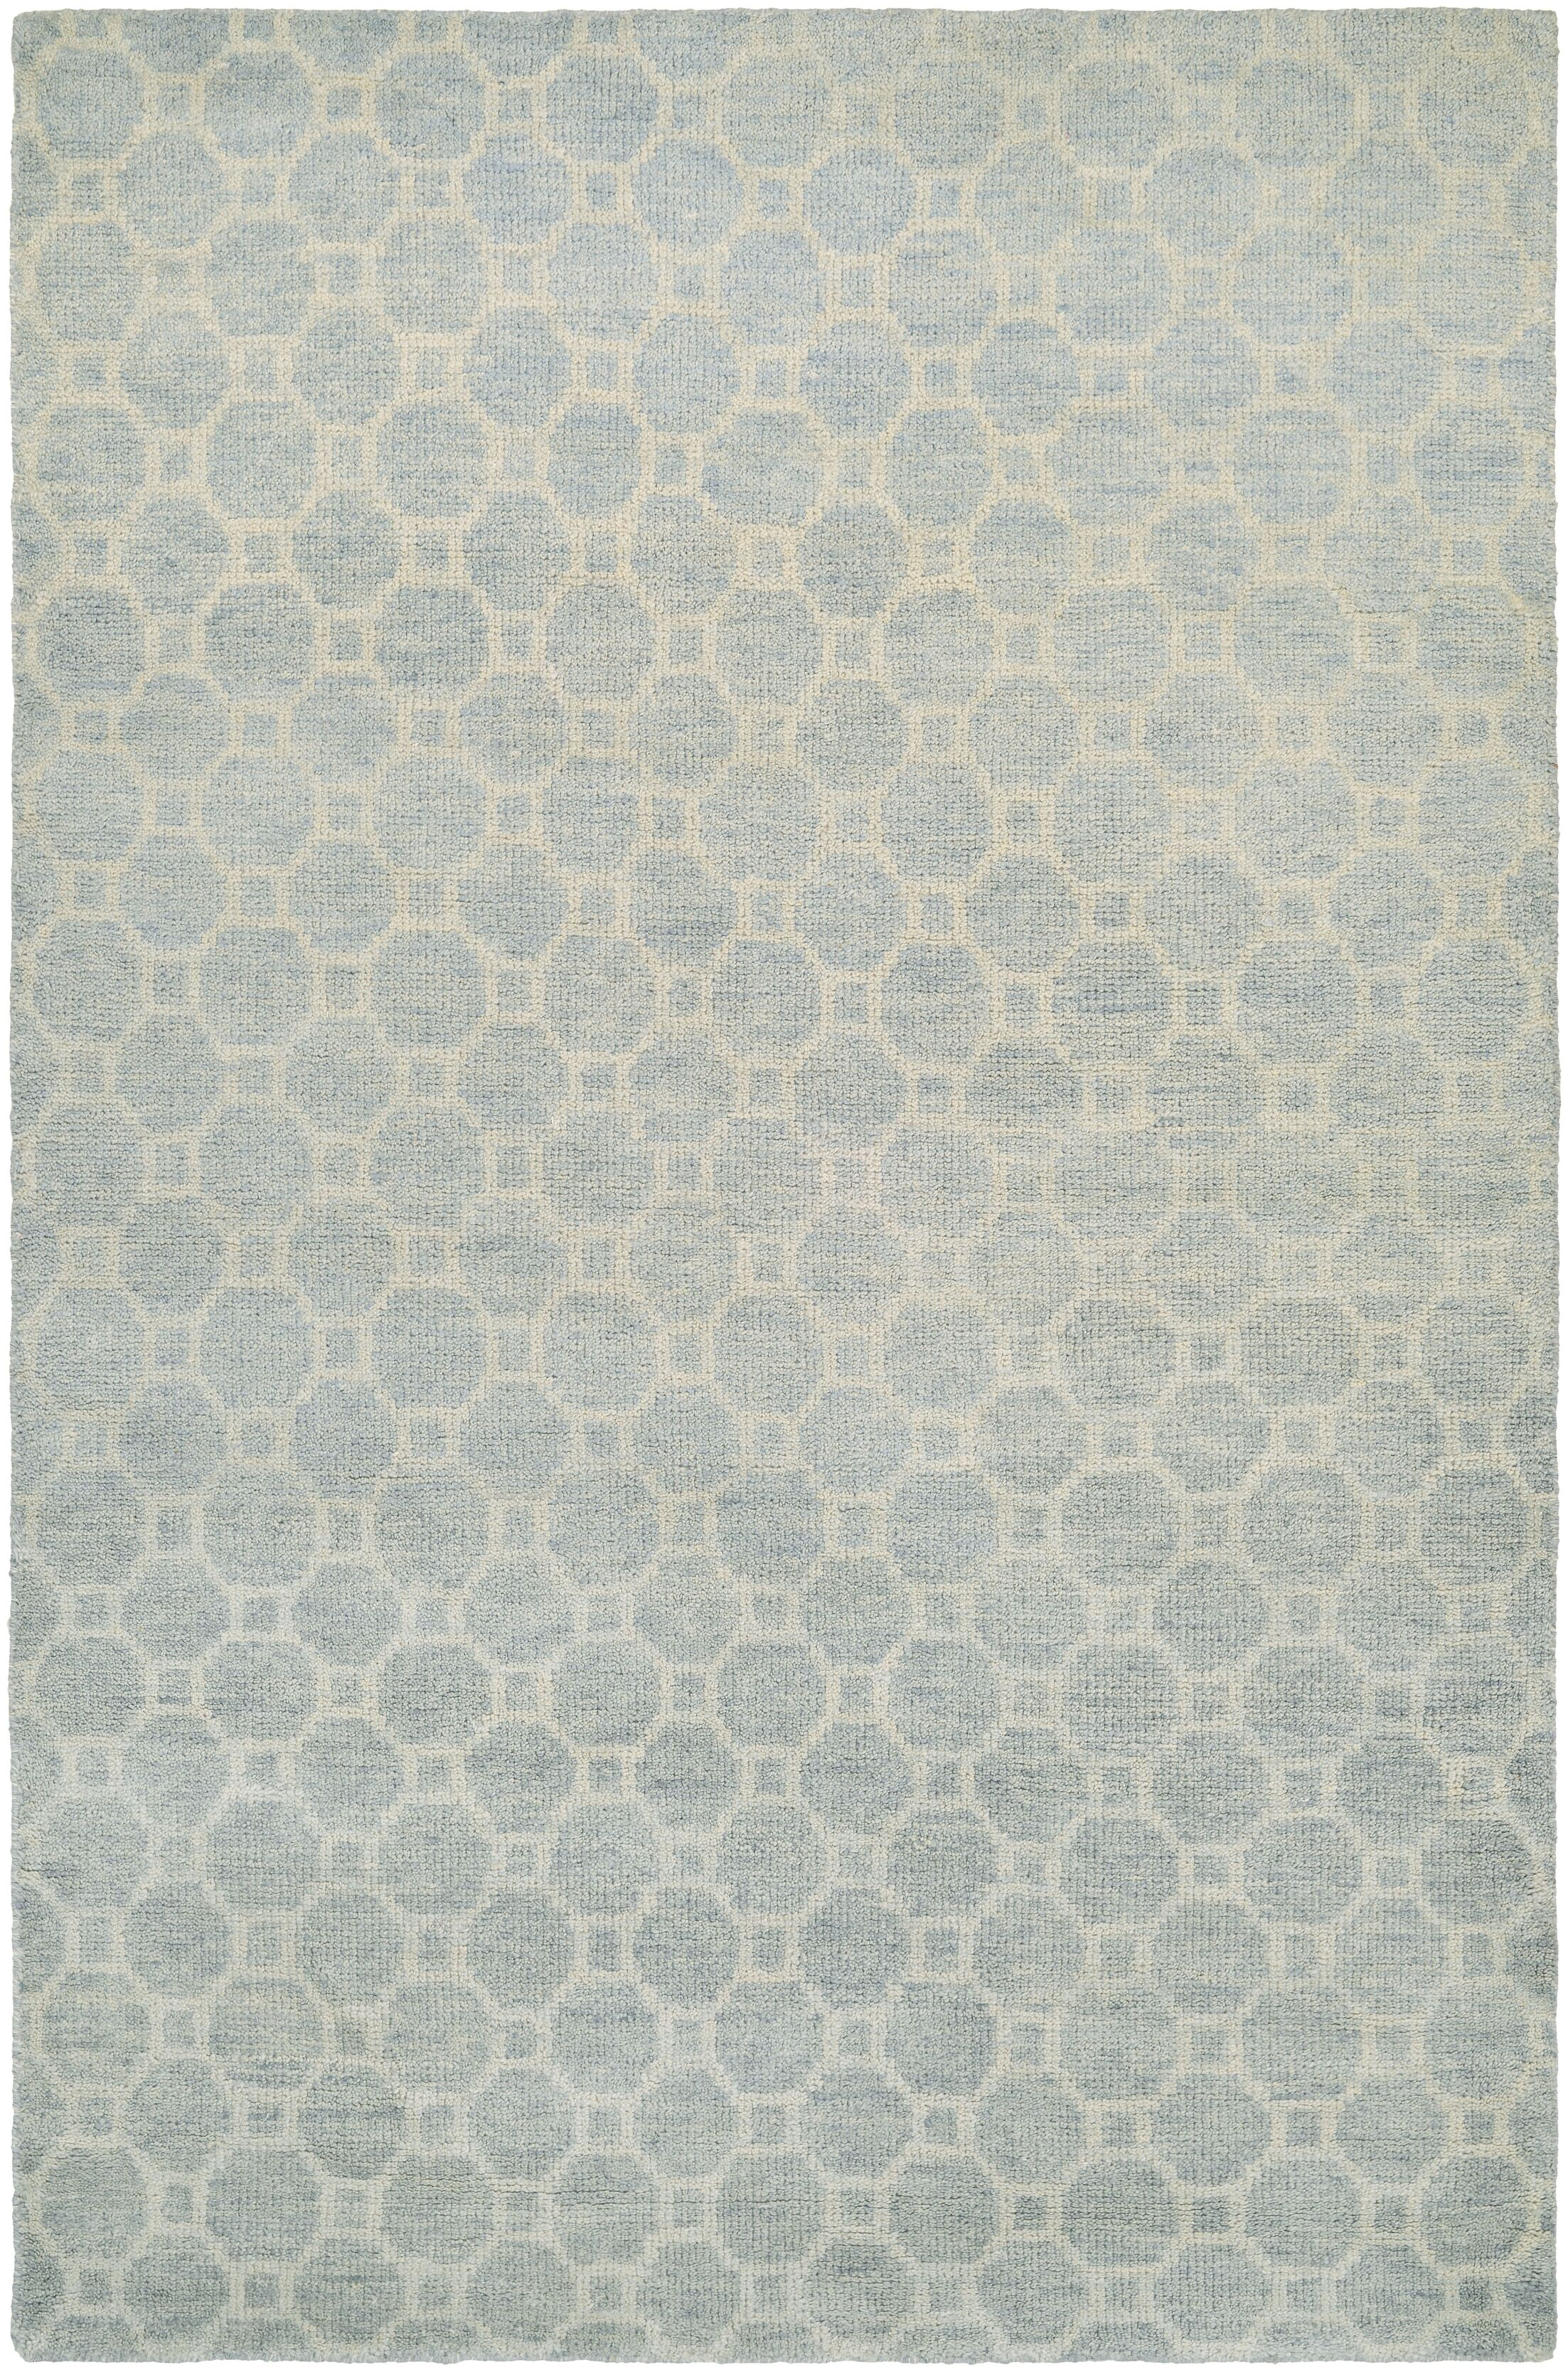 Lopresti Hand-Knotted Ivory/Light Blue Area Rug Rug Size: Rectangle 8' x 11'